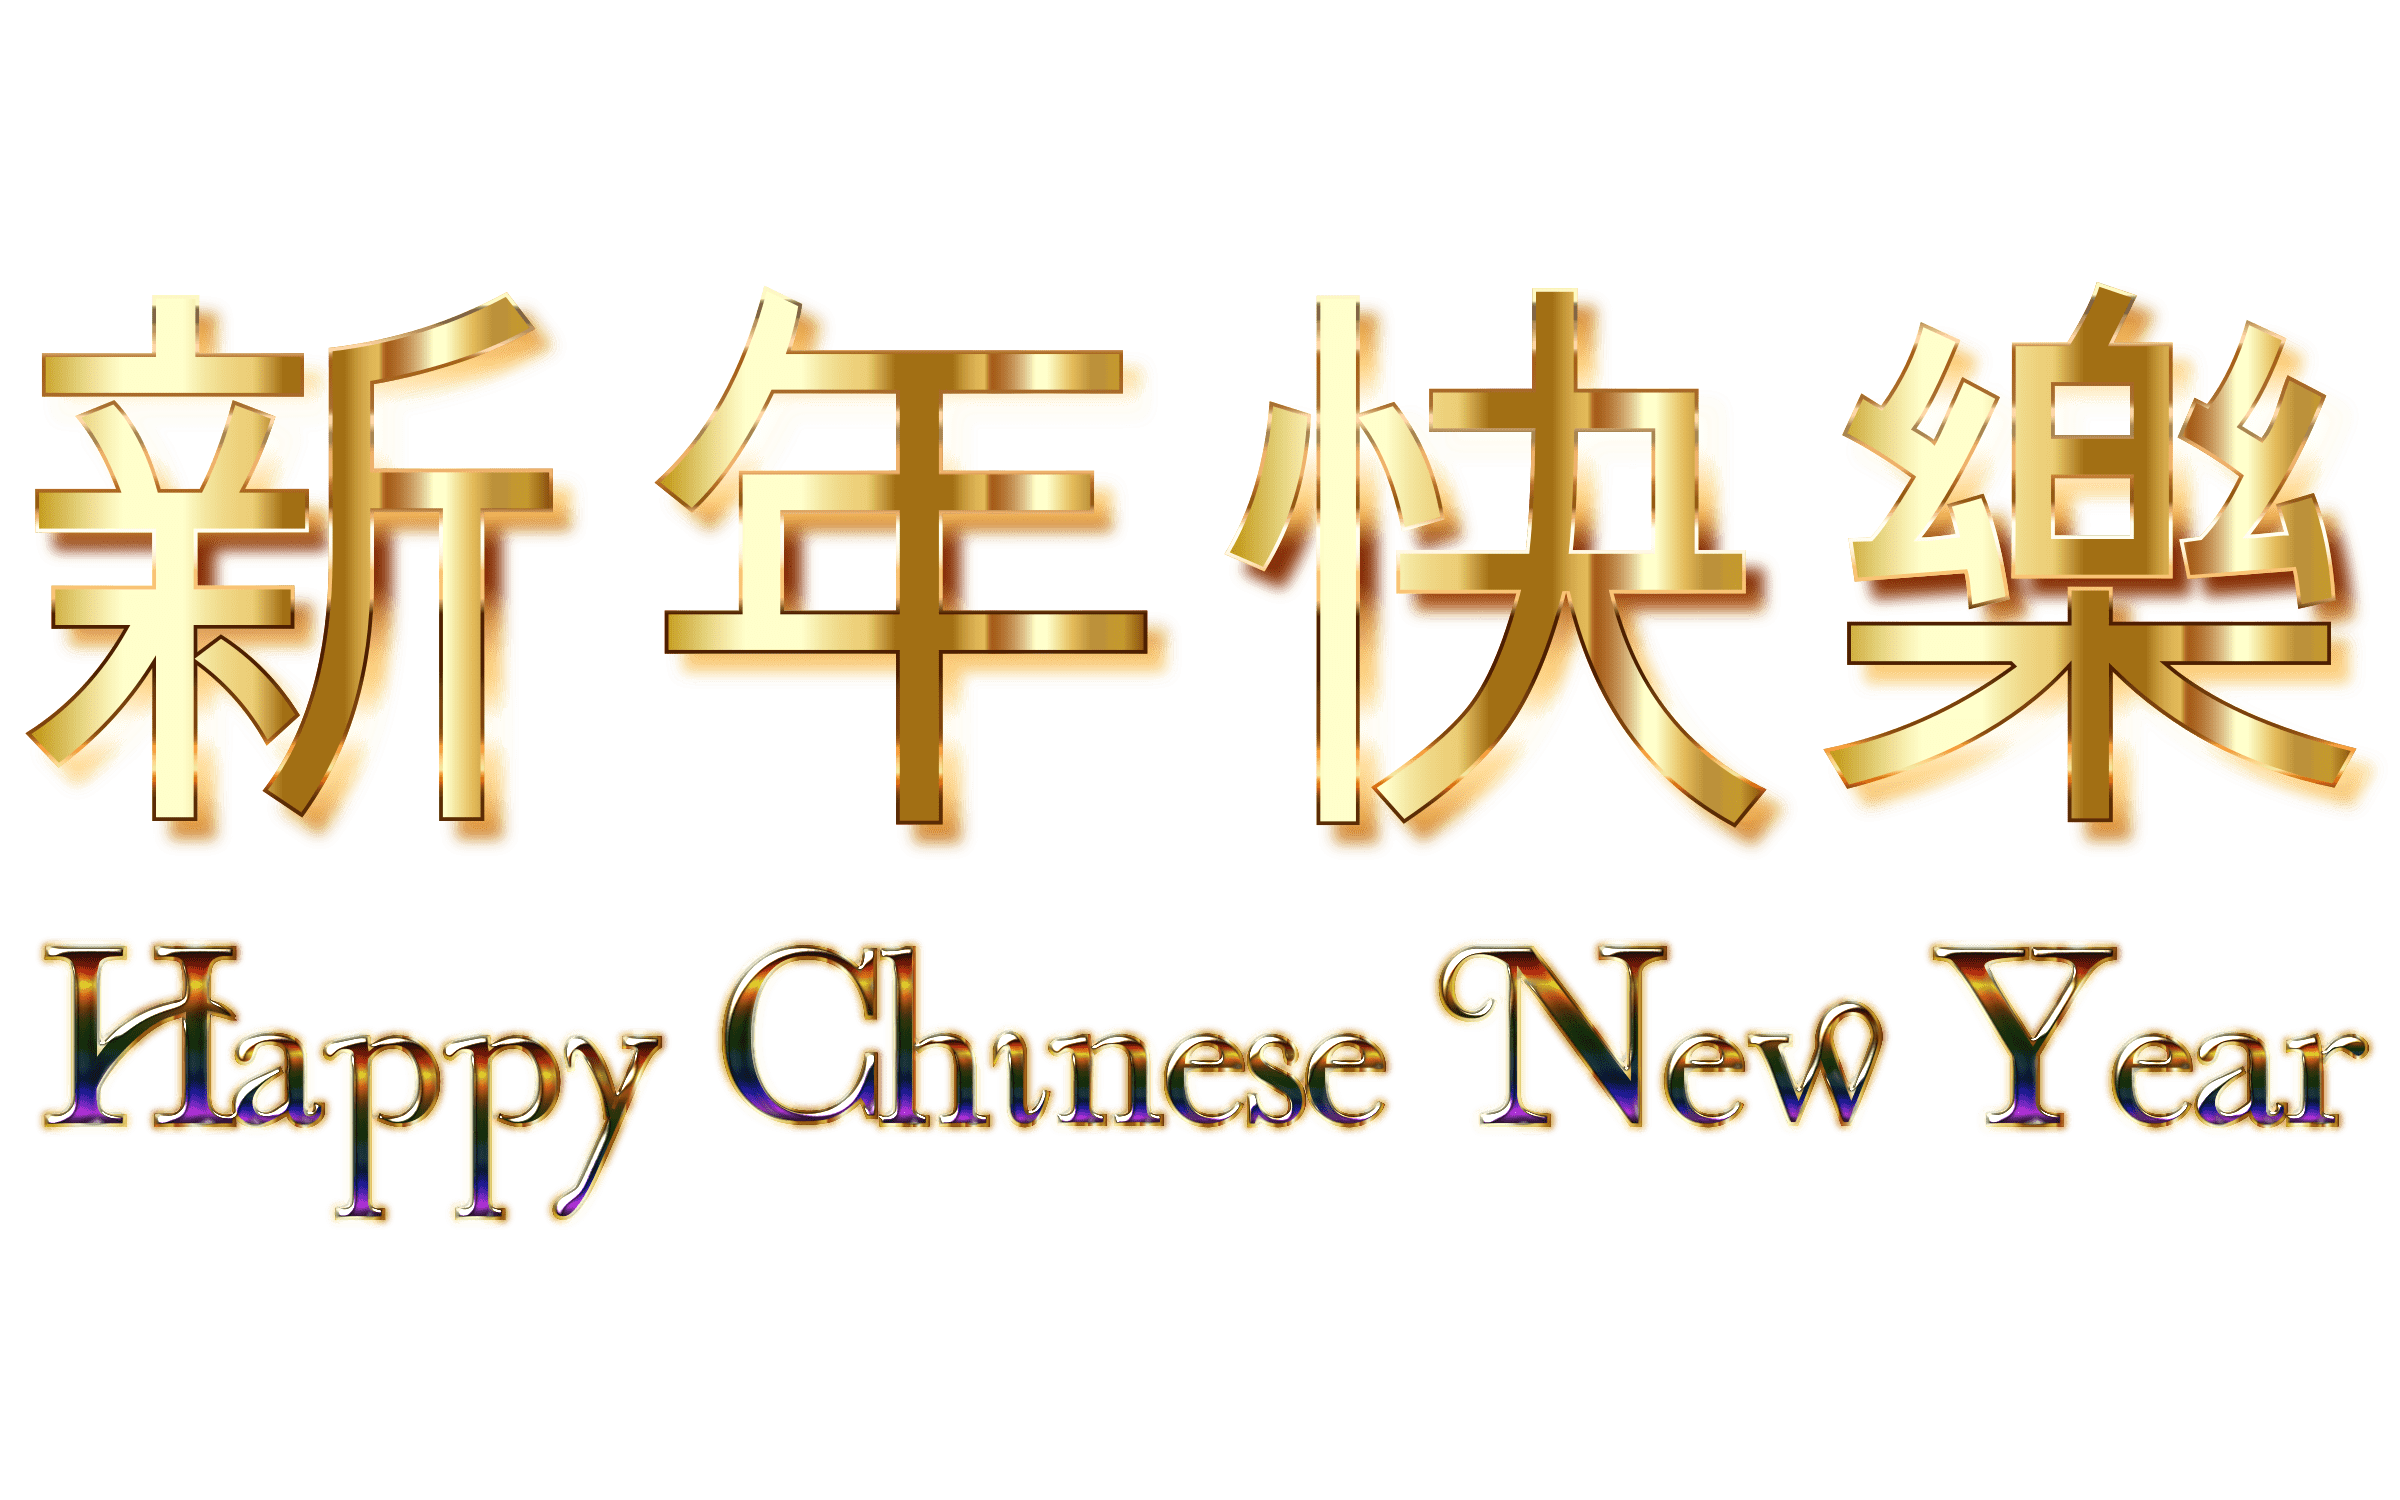 Happy Chinese New Year - Chinese New Year PNG